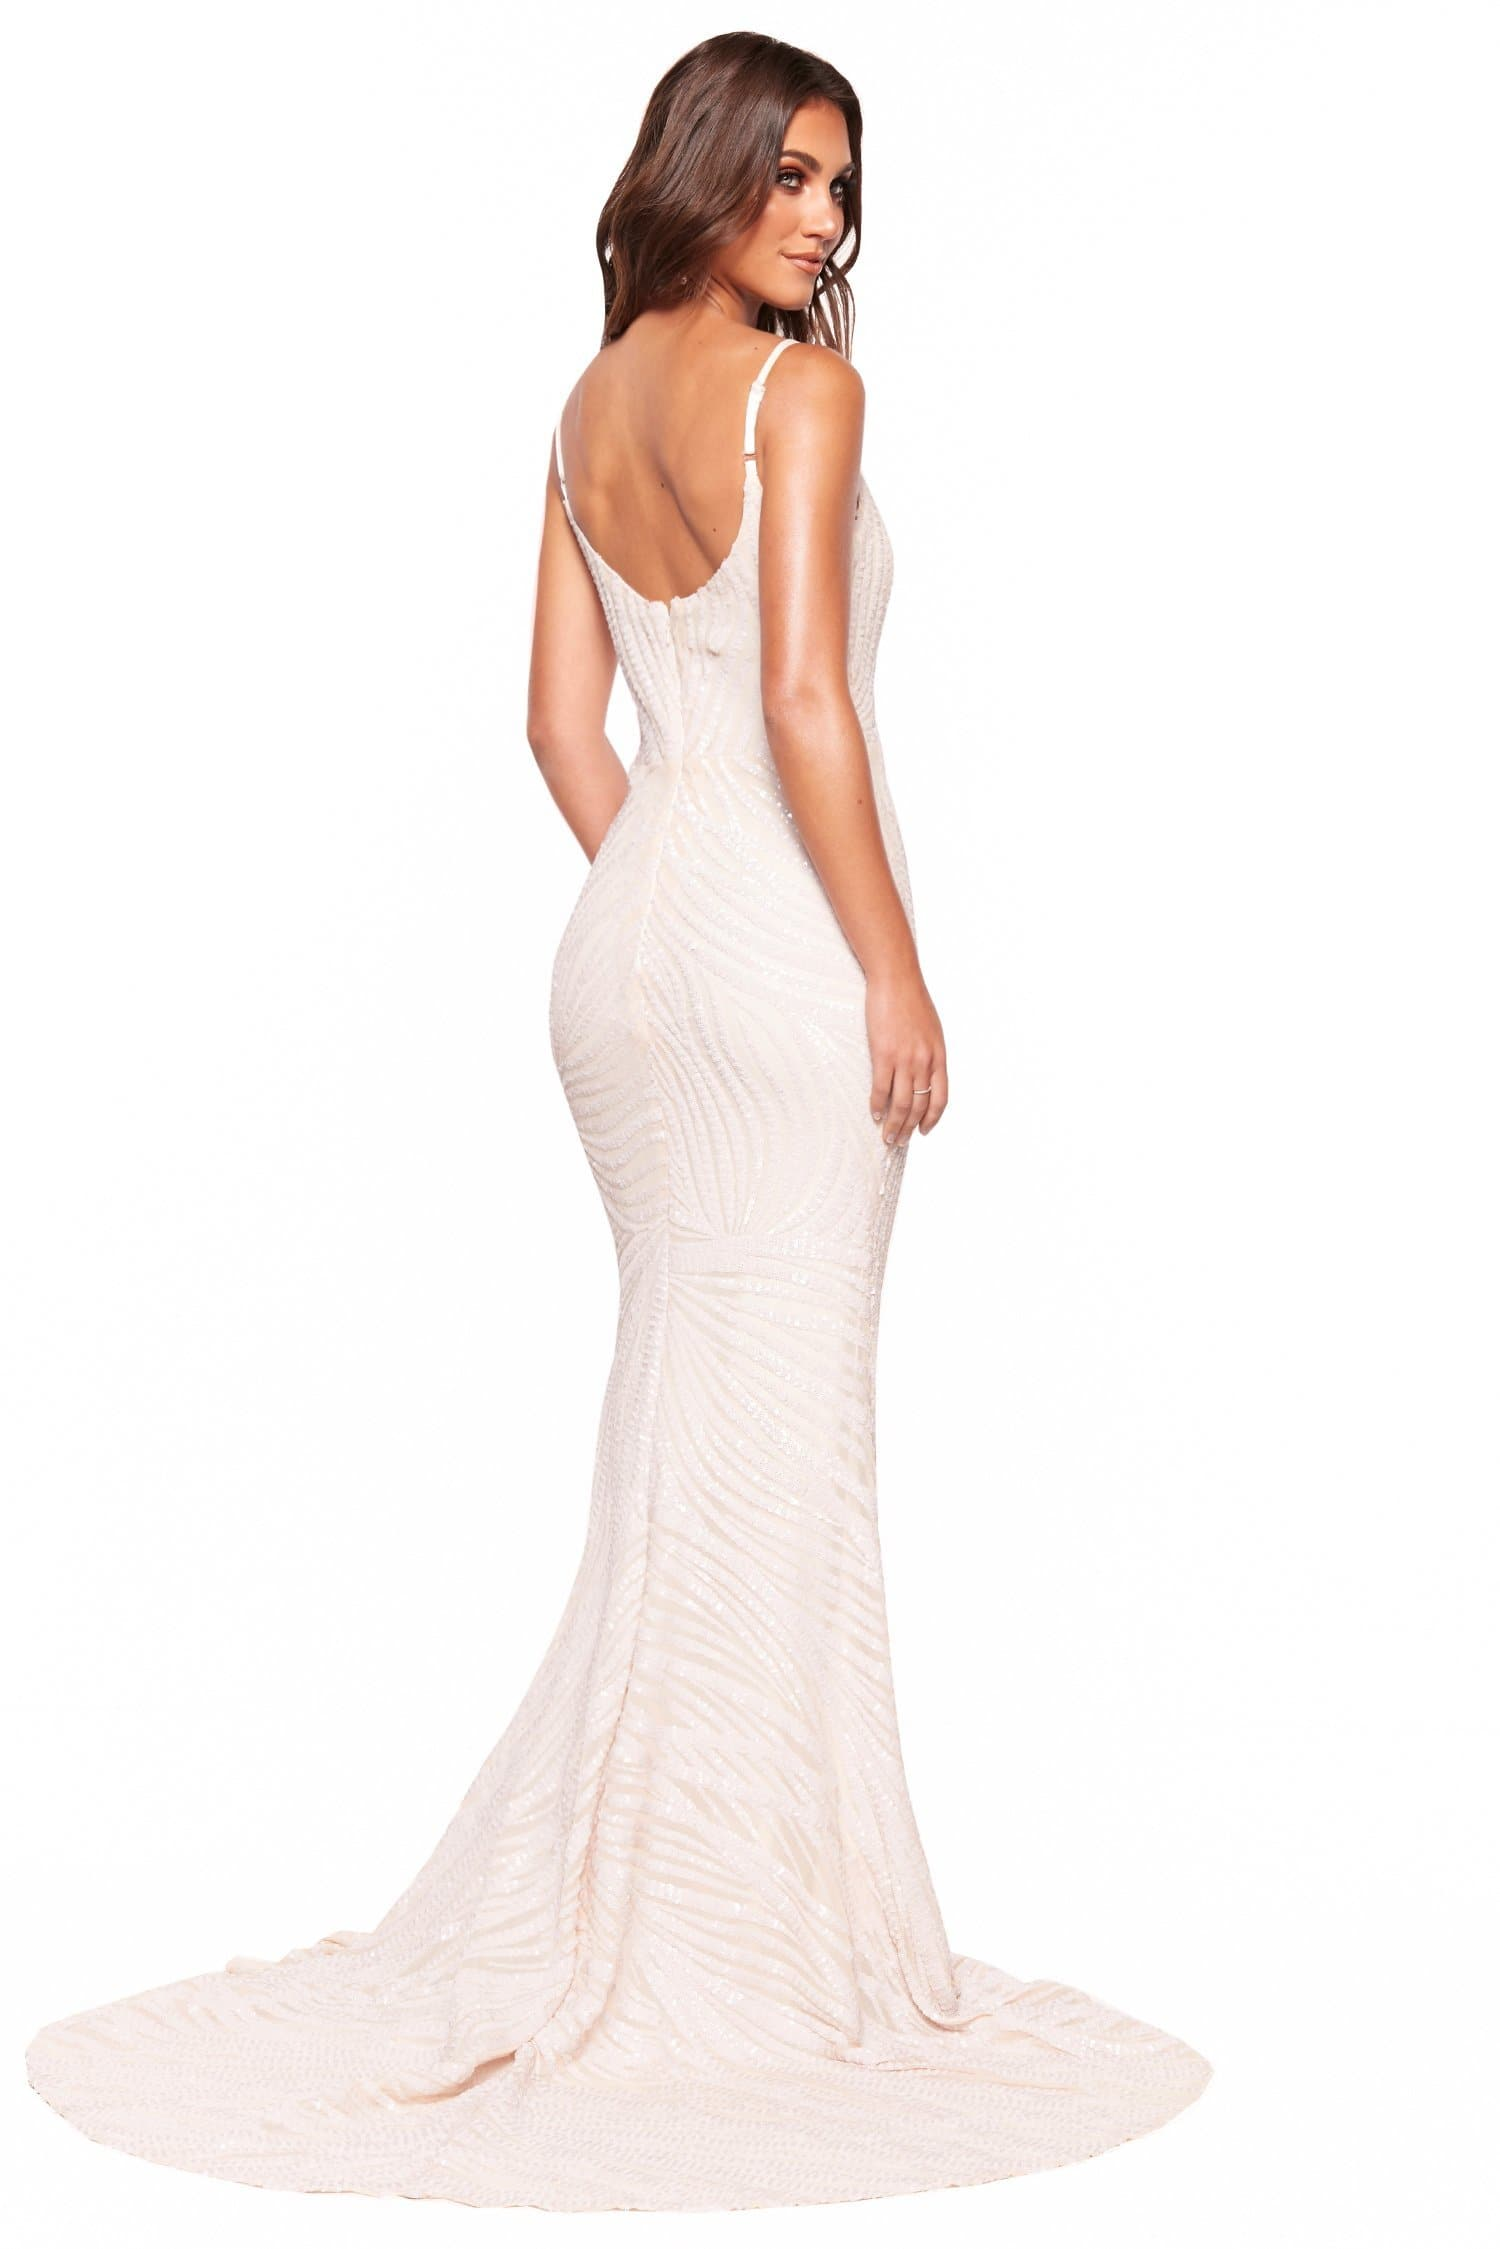 A&N Luxe Jamilla - White Patterned Sequin Gown with Sweetheart Neckline